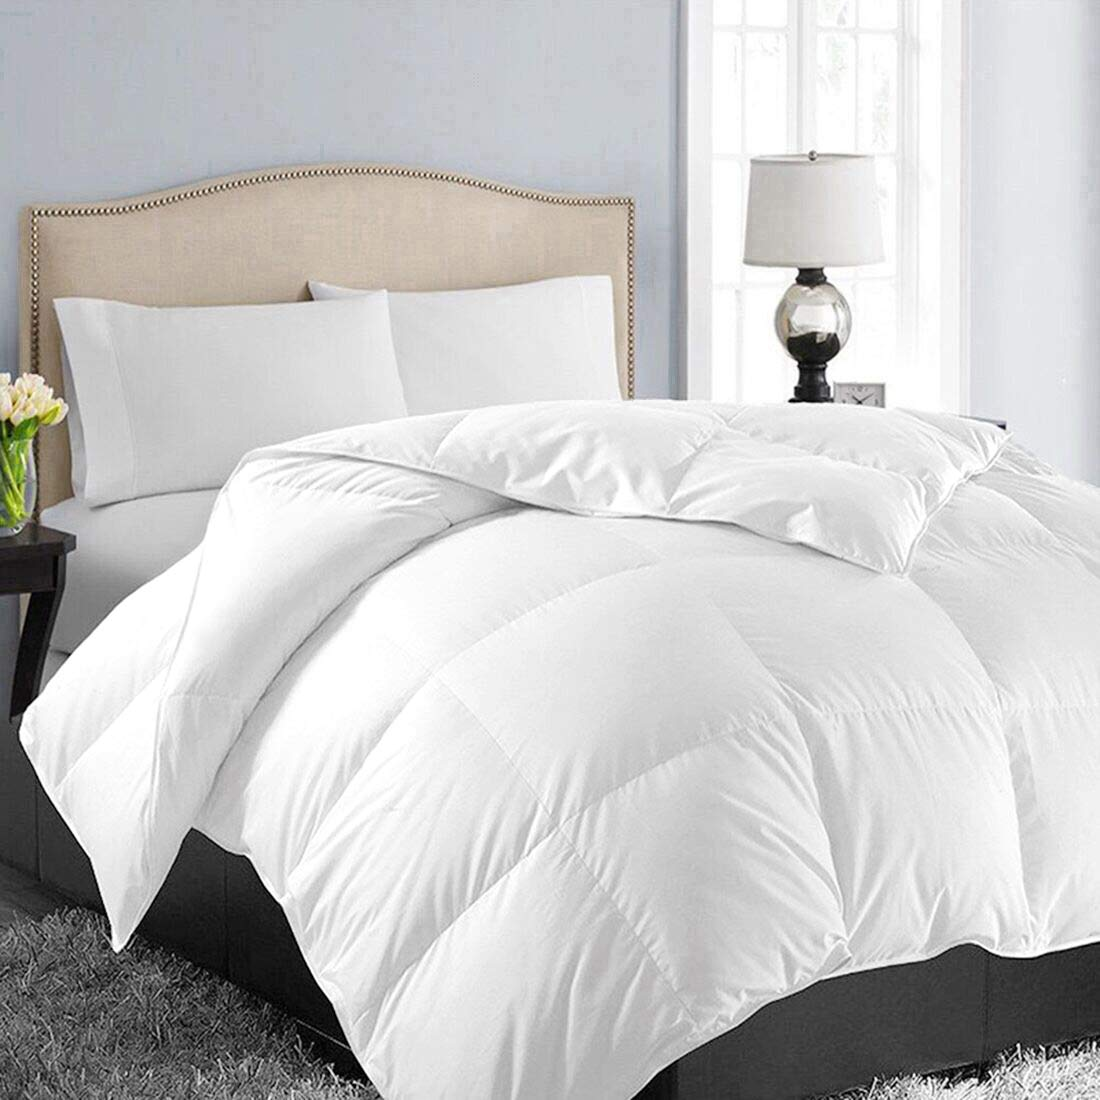 EASELAND All Season King Soft Quilted Down Alternative Comforter Hotel Collection Reversible Duvet Insert with Corner Ties,Warm Fluffy Hypoallergenic,White,90 by 102 Inches